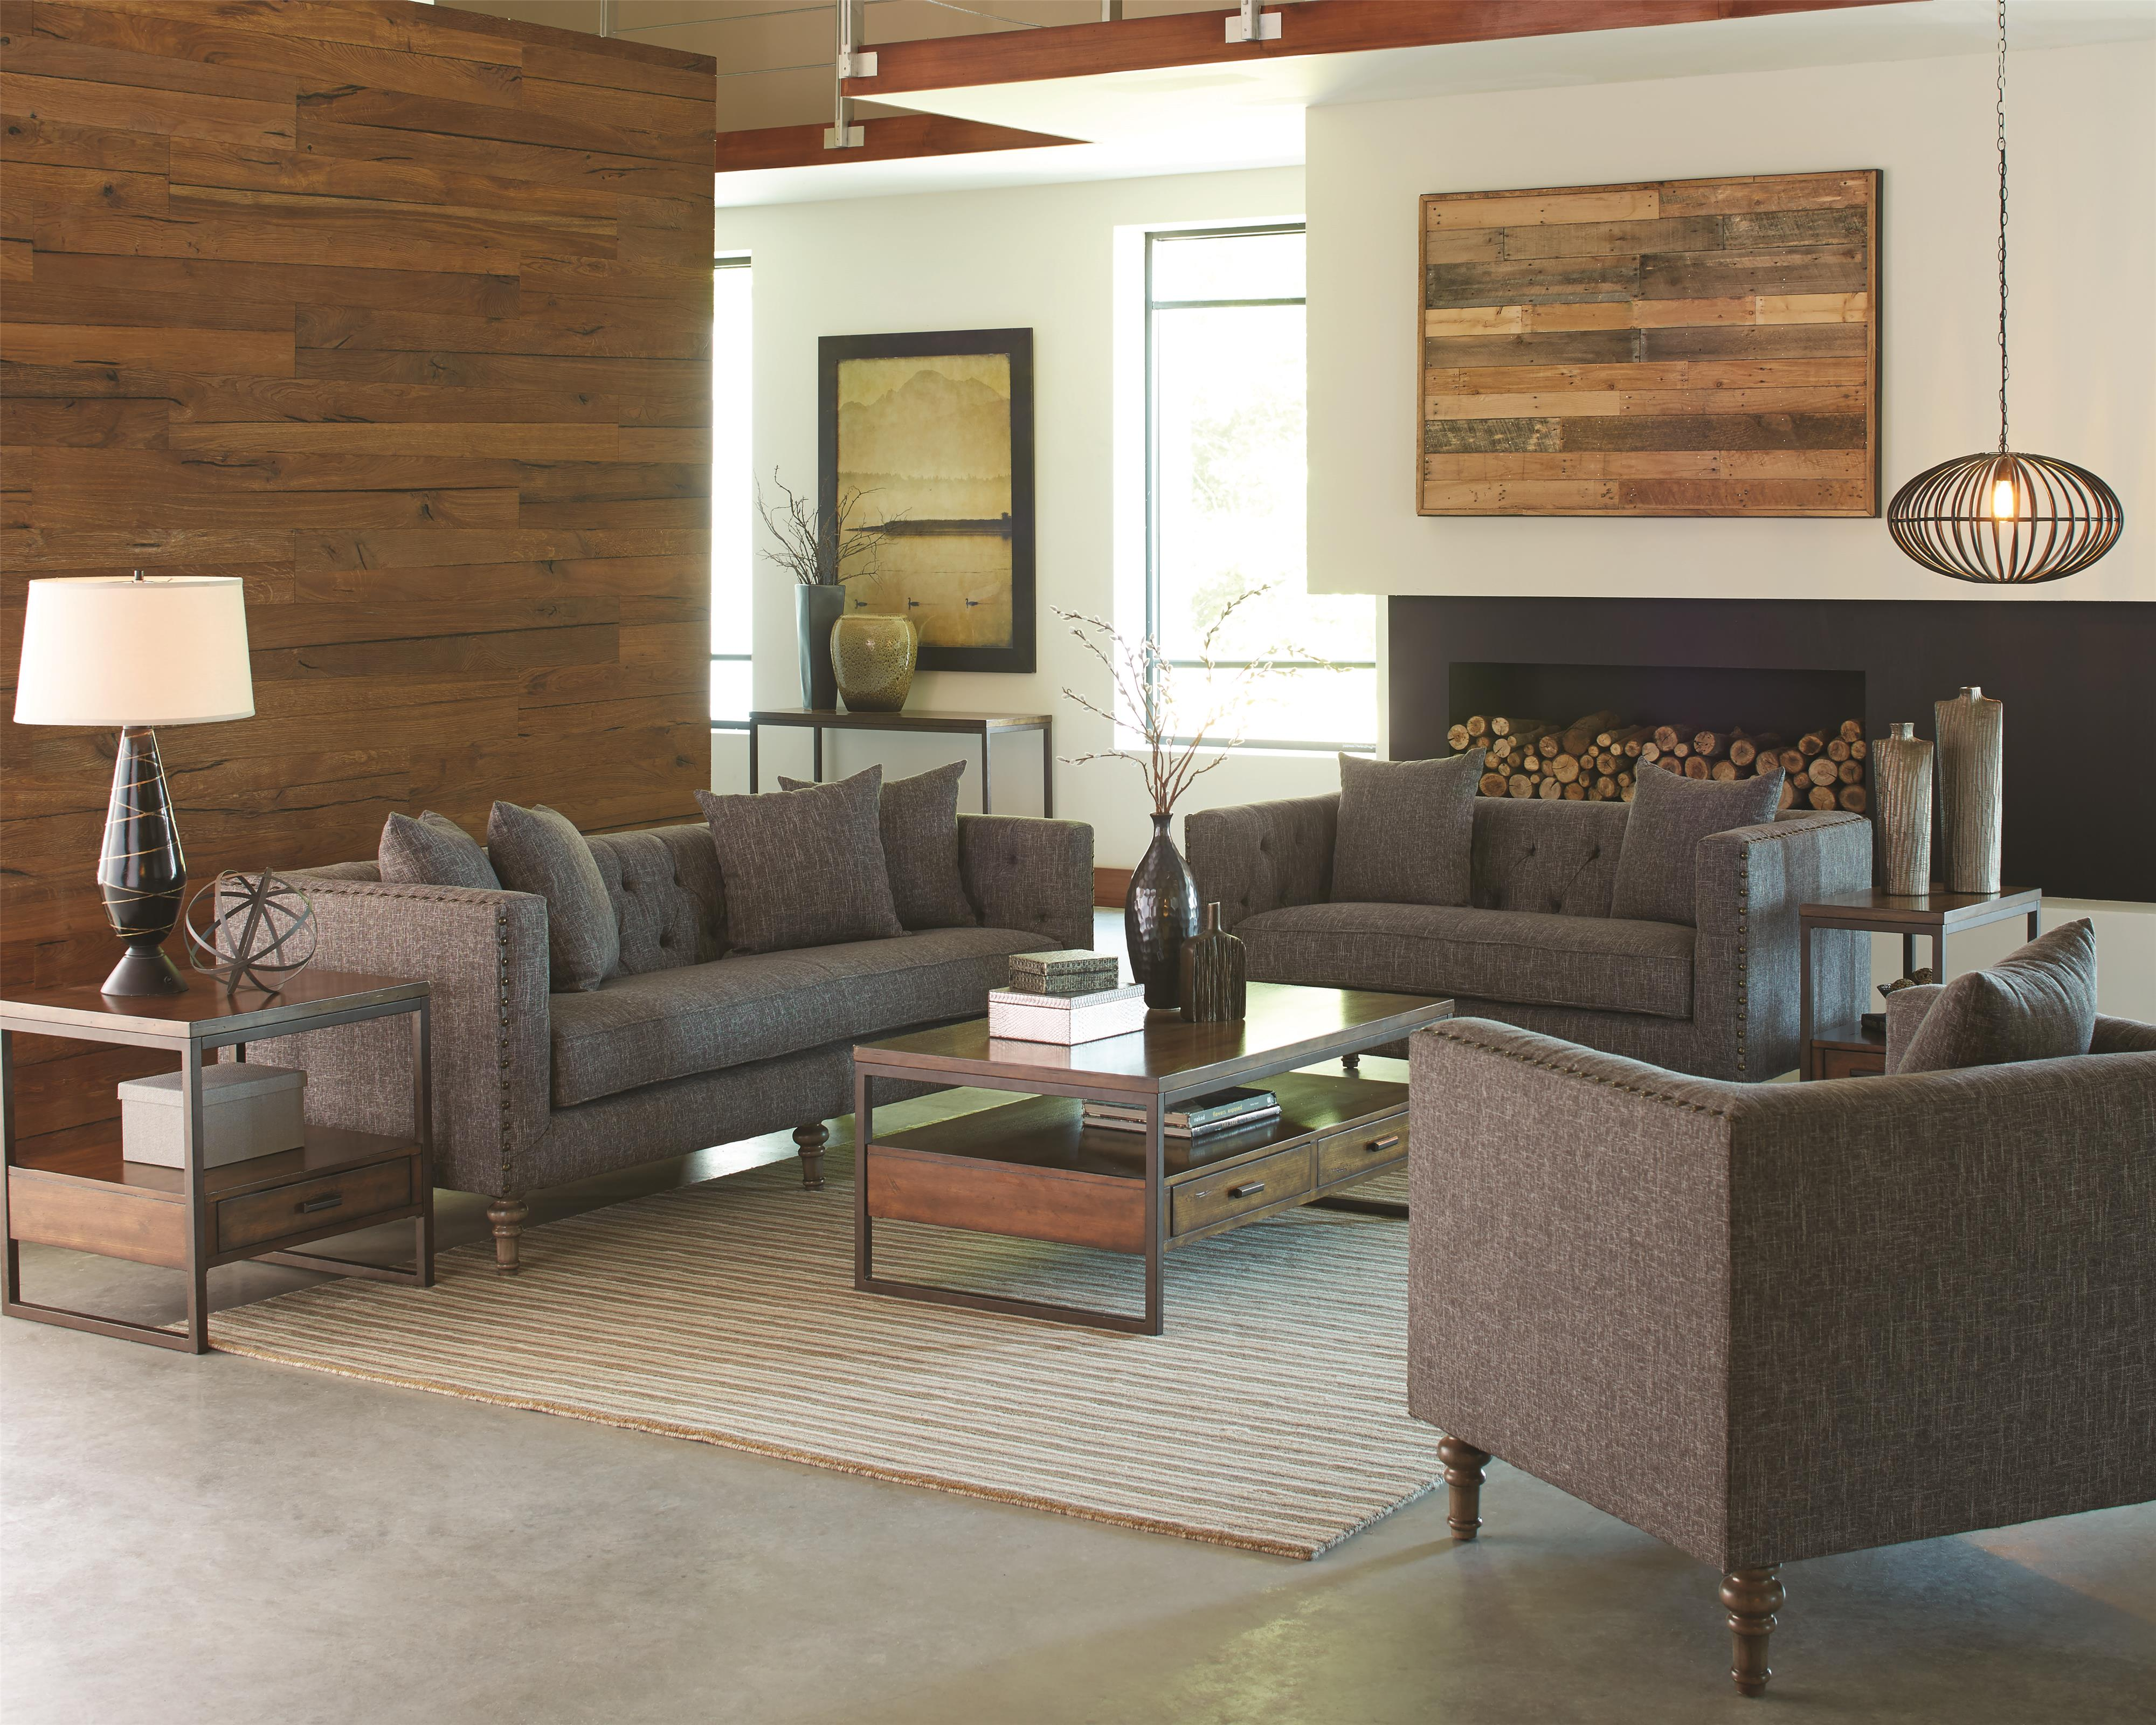 living room with loveseat and chairs interior design for small apartment coaster ellery stationary group value city furniture